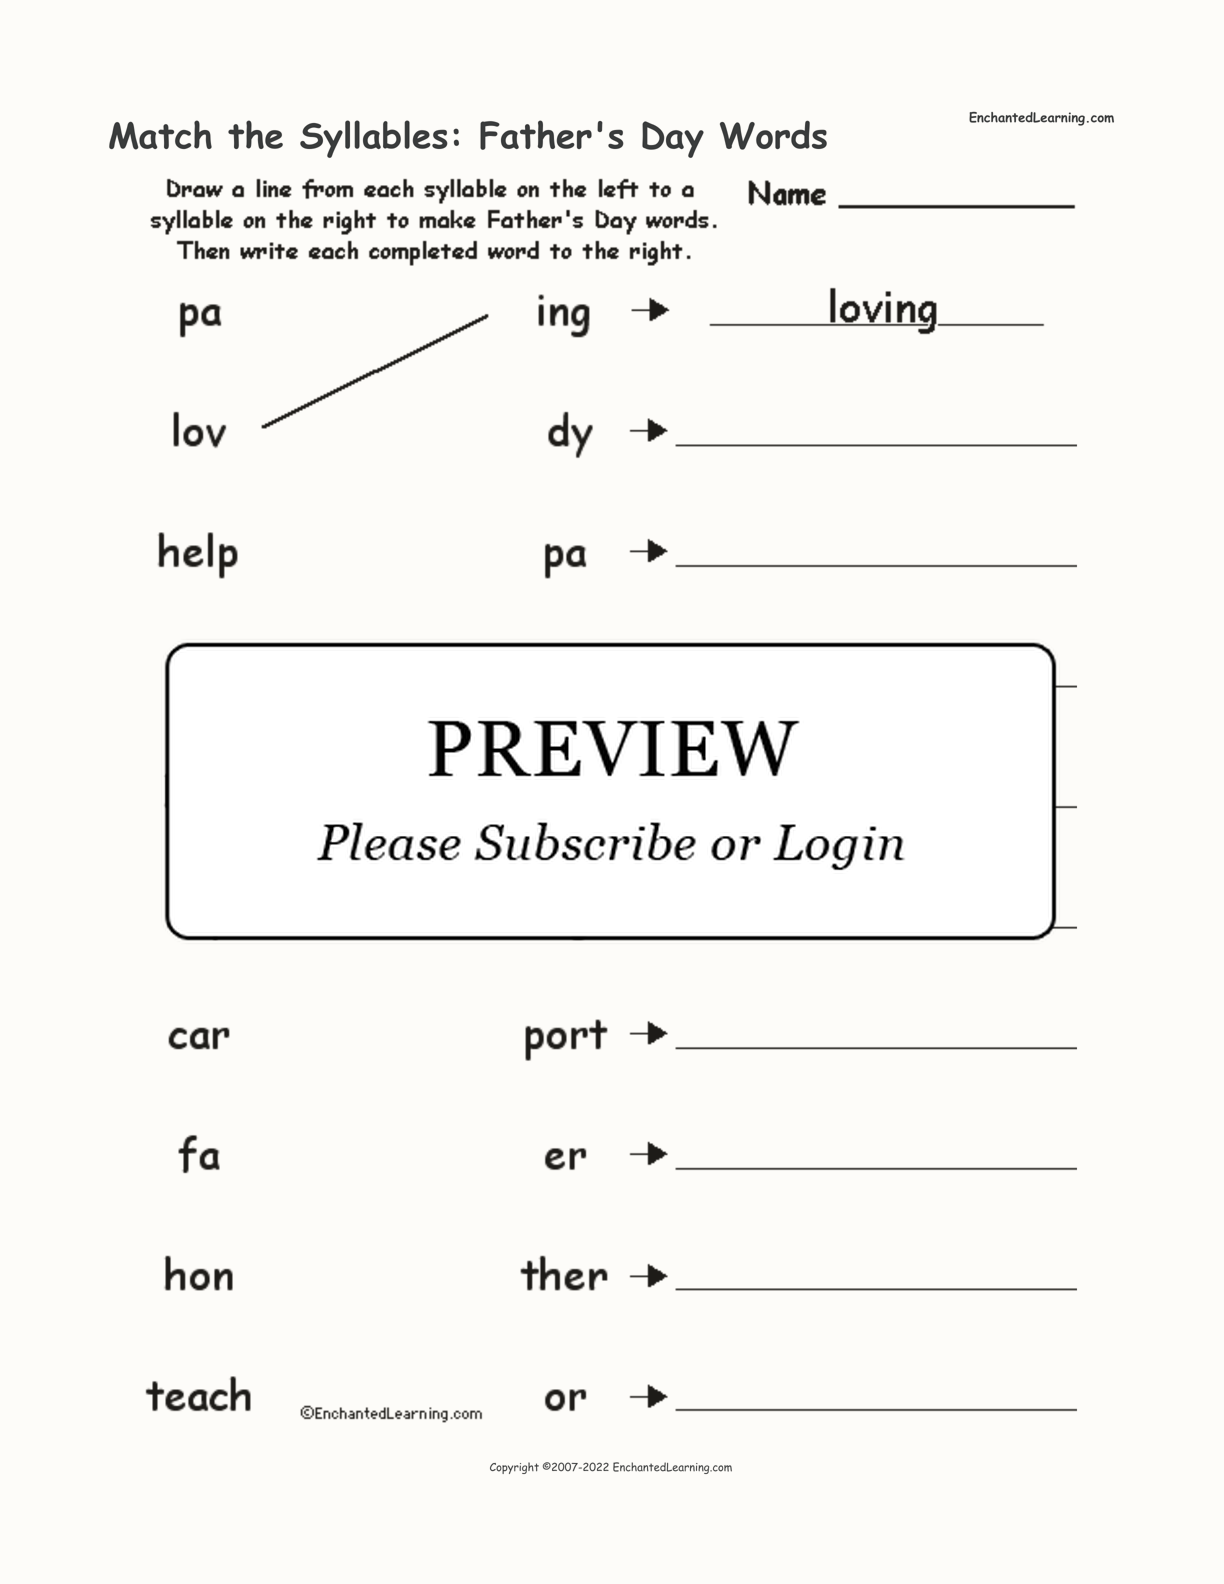 Match the Syllables: Father's Day Words interactive worksheet page 1